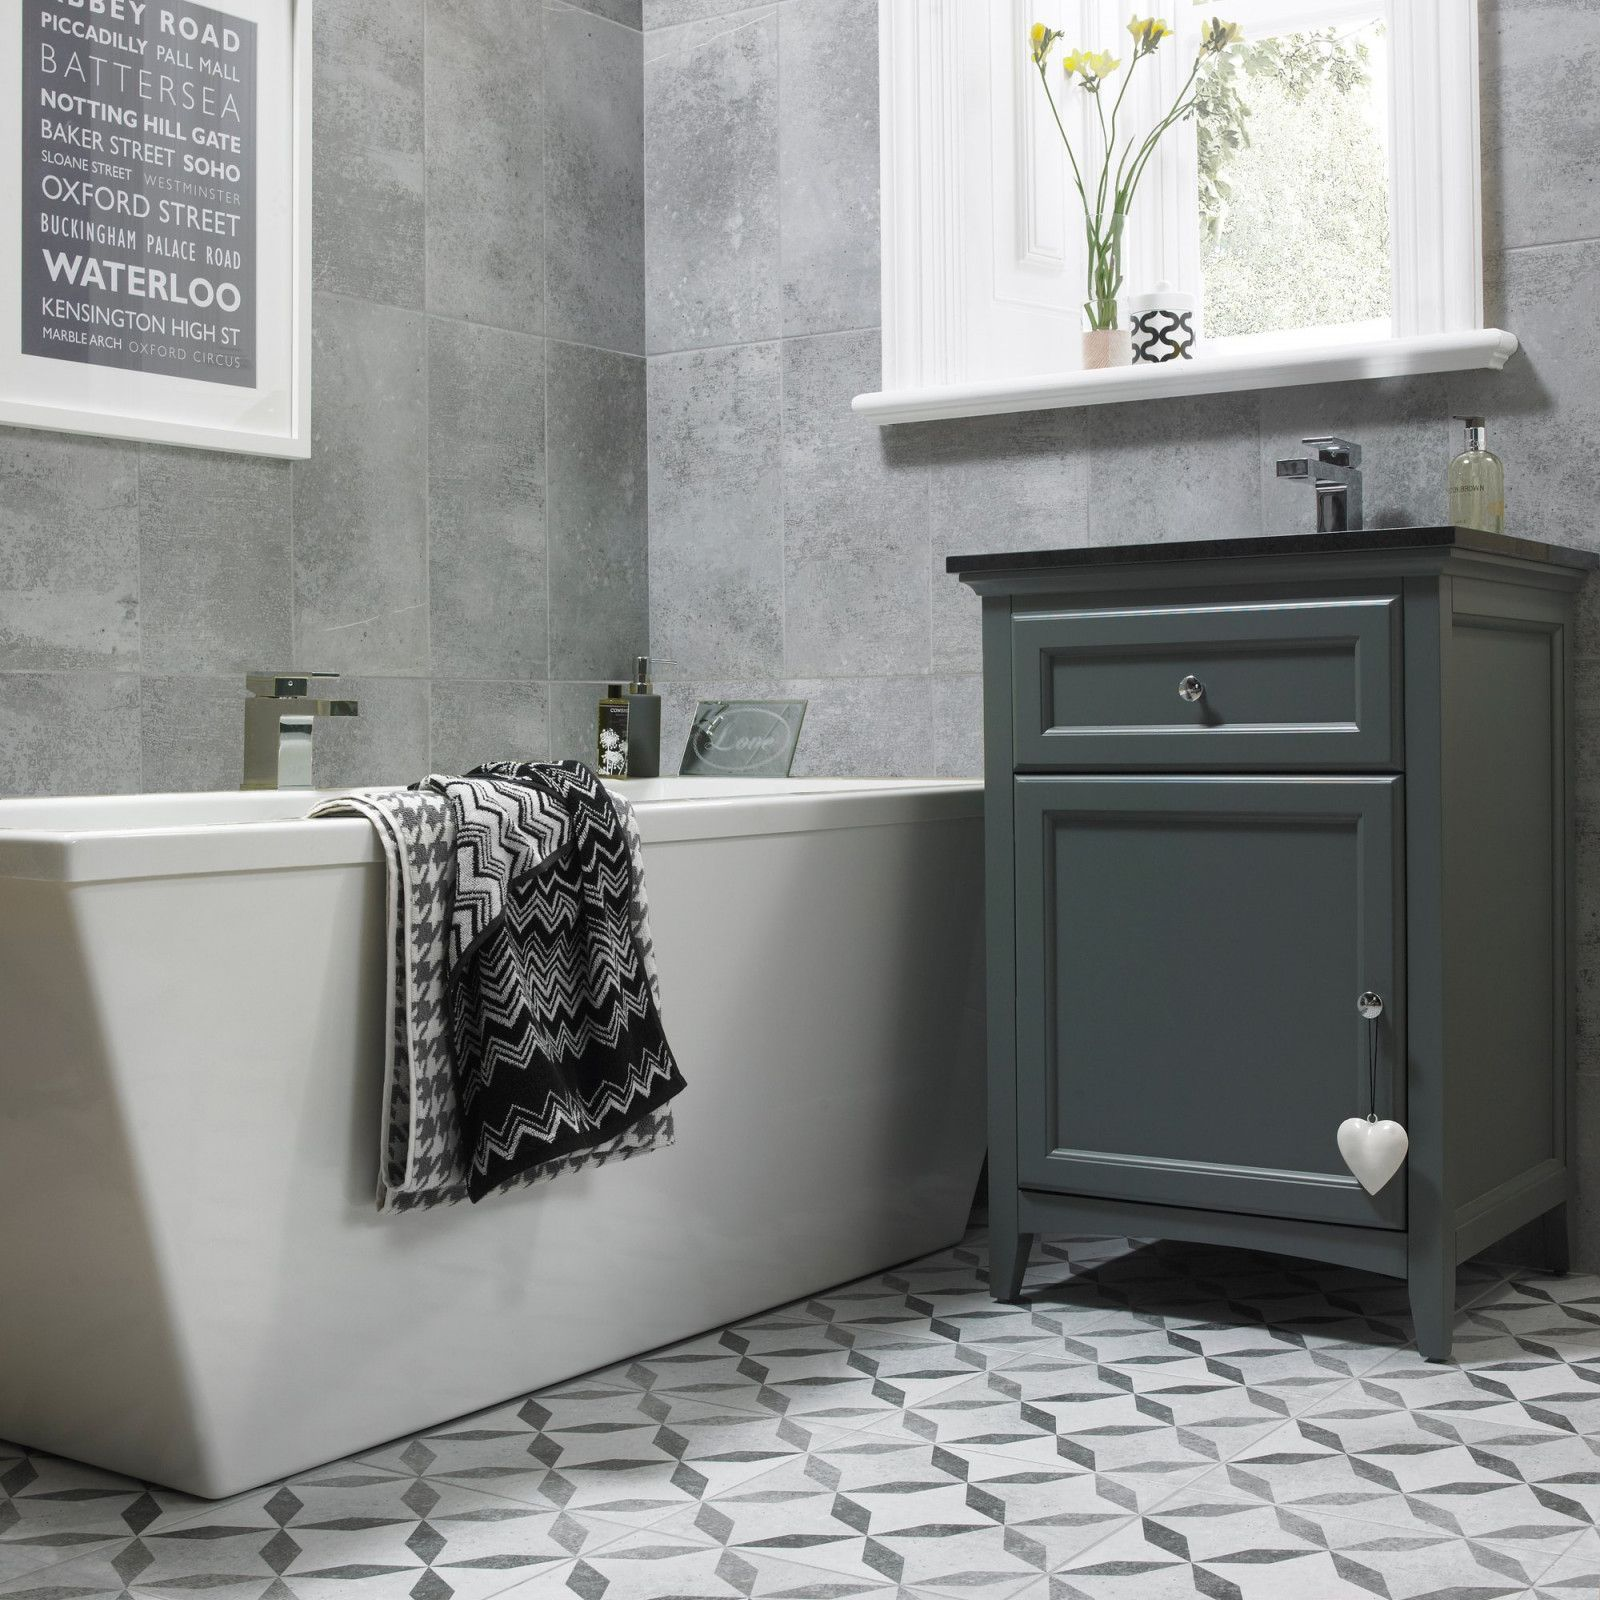 Urban Effect Wall And Floor Tiles With Matching Feature Floor In Shades Of Grey The Large Rectangular 24 Bathroom Wall Coverings Tile Bathroom Grey Wall Tiles